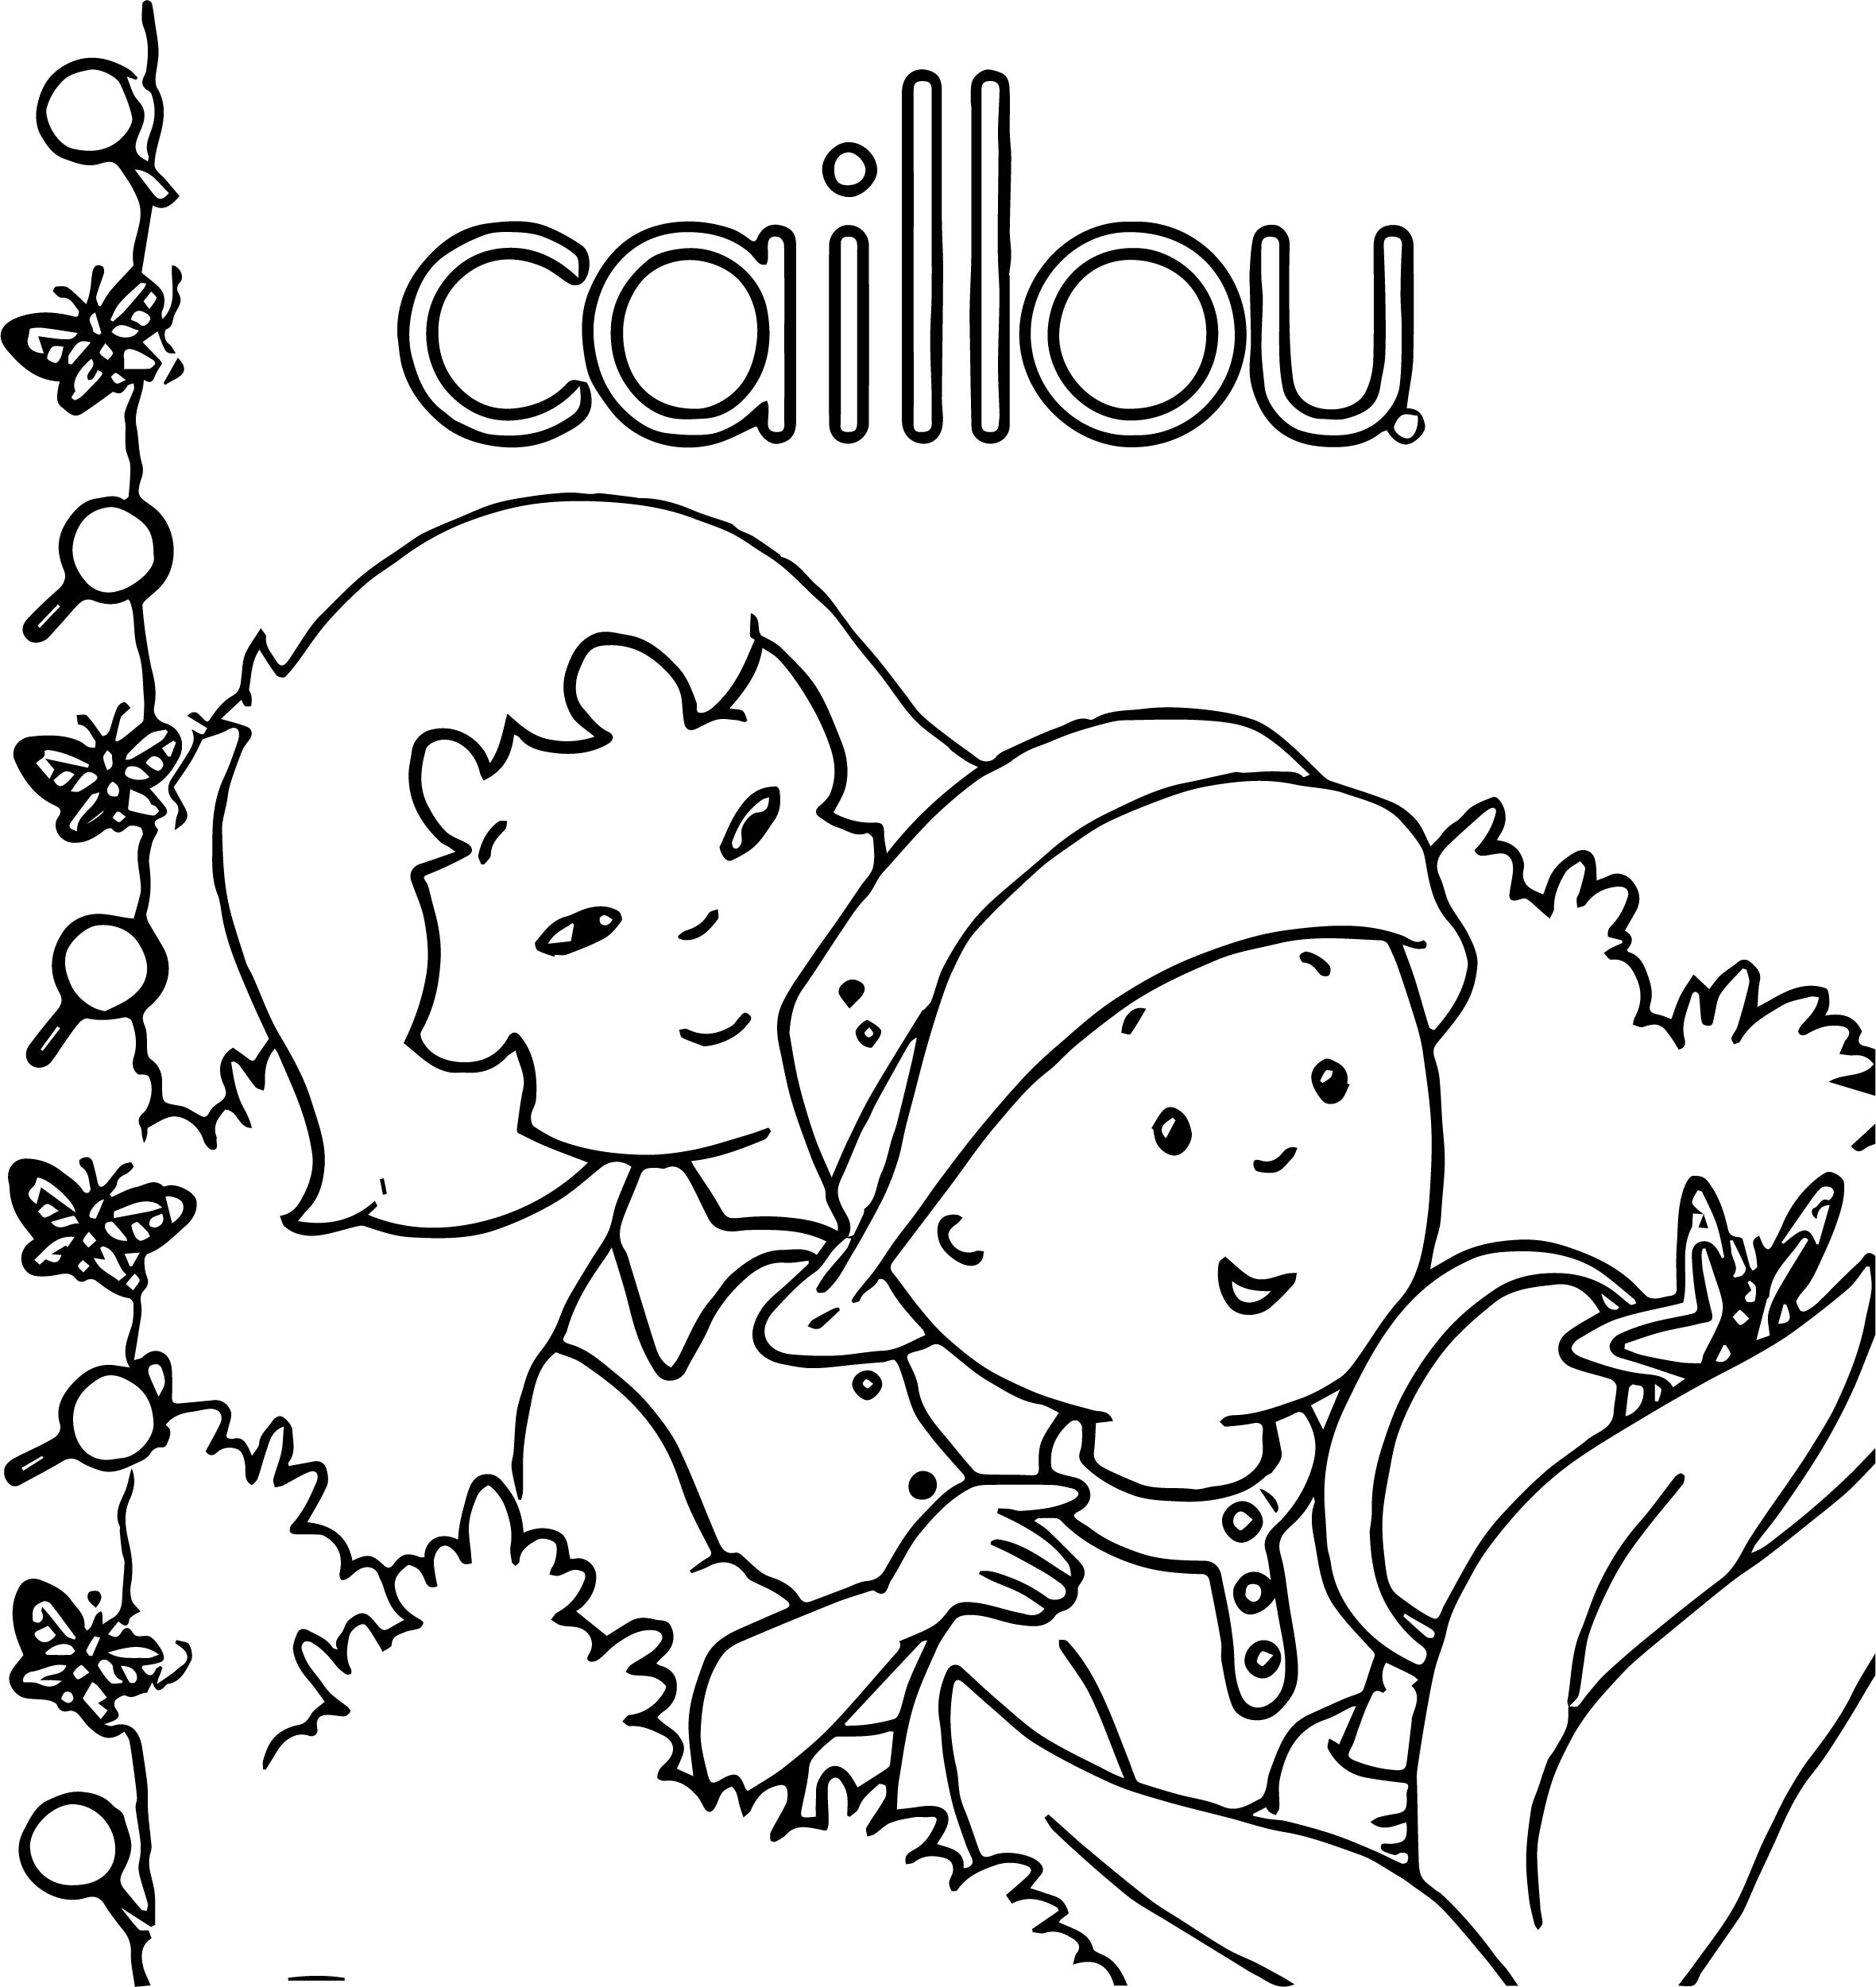 Caillou Tree Caillou Coloring Page